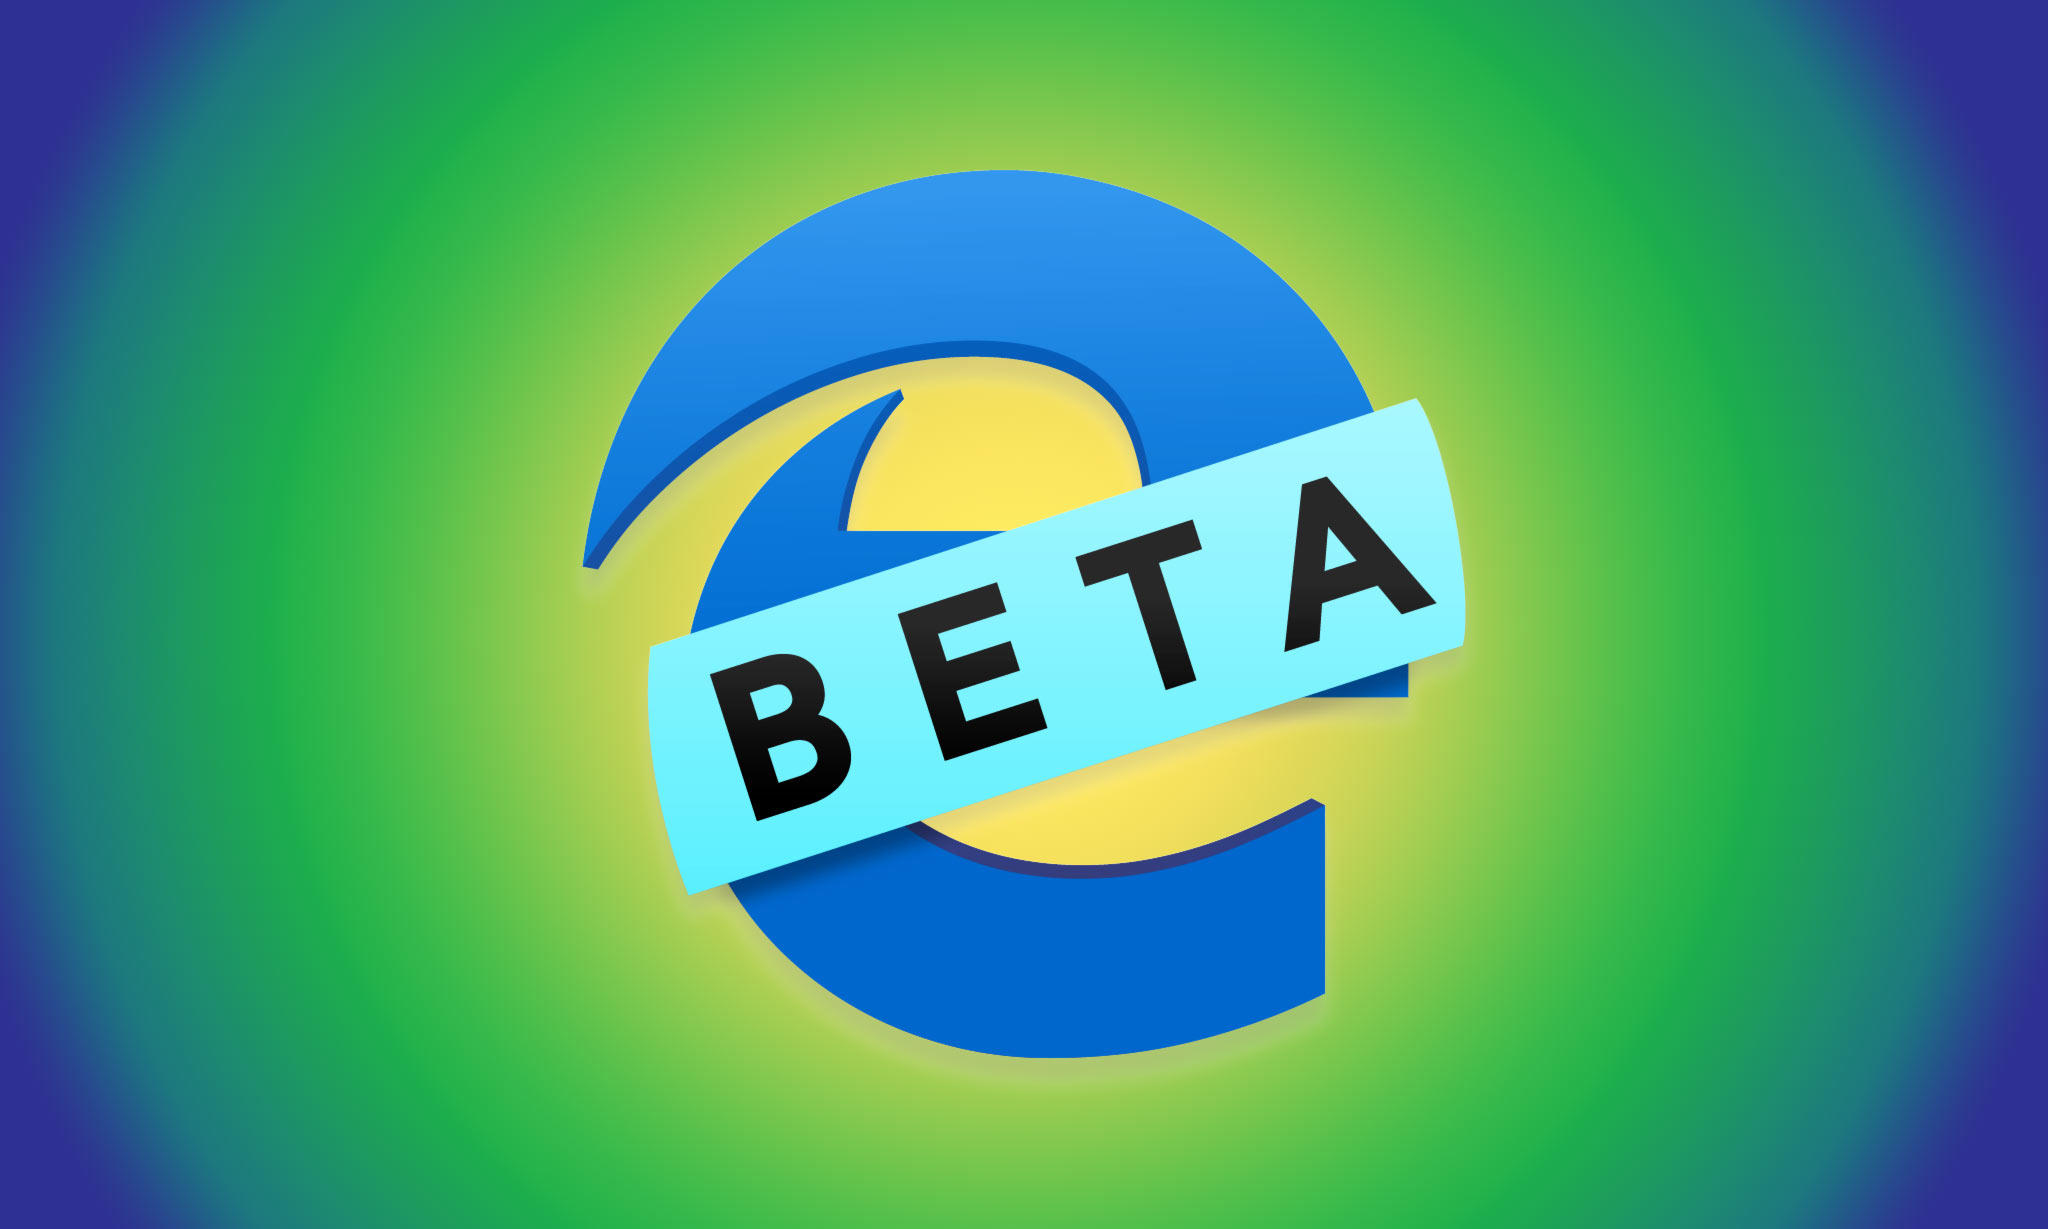 The Chromium-based version of Microsoft's Edge browser is now in beta testing.